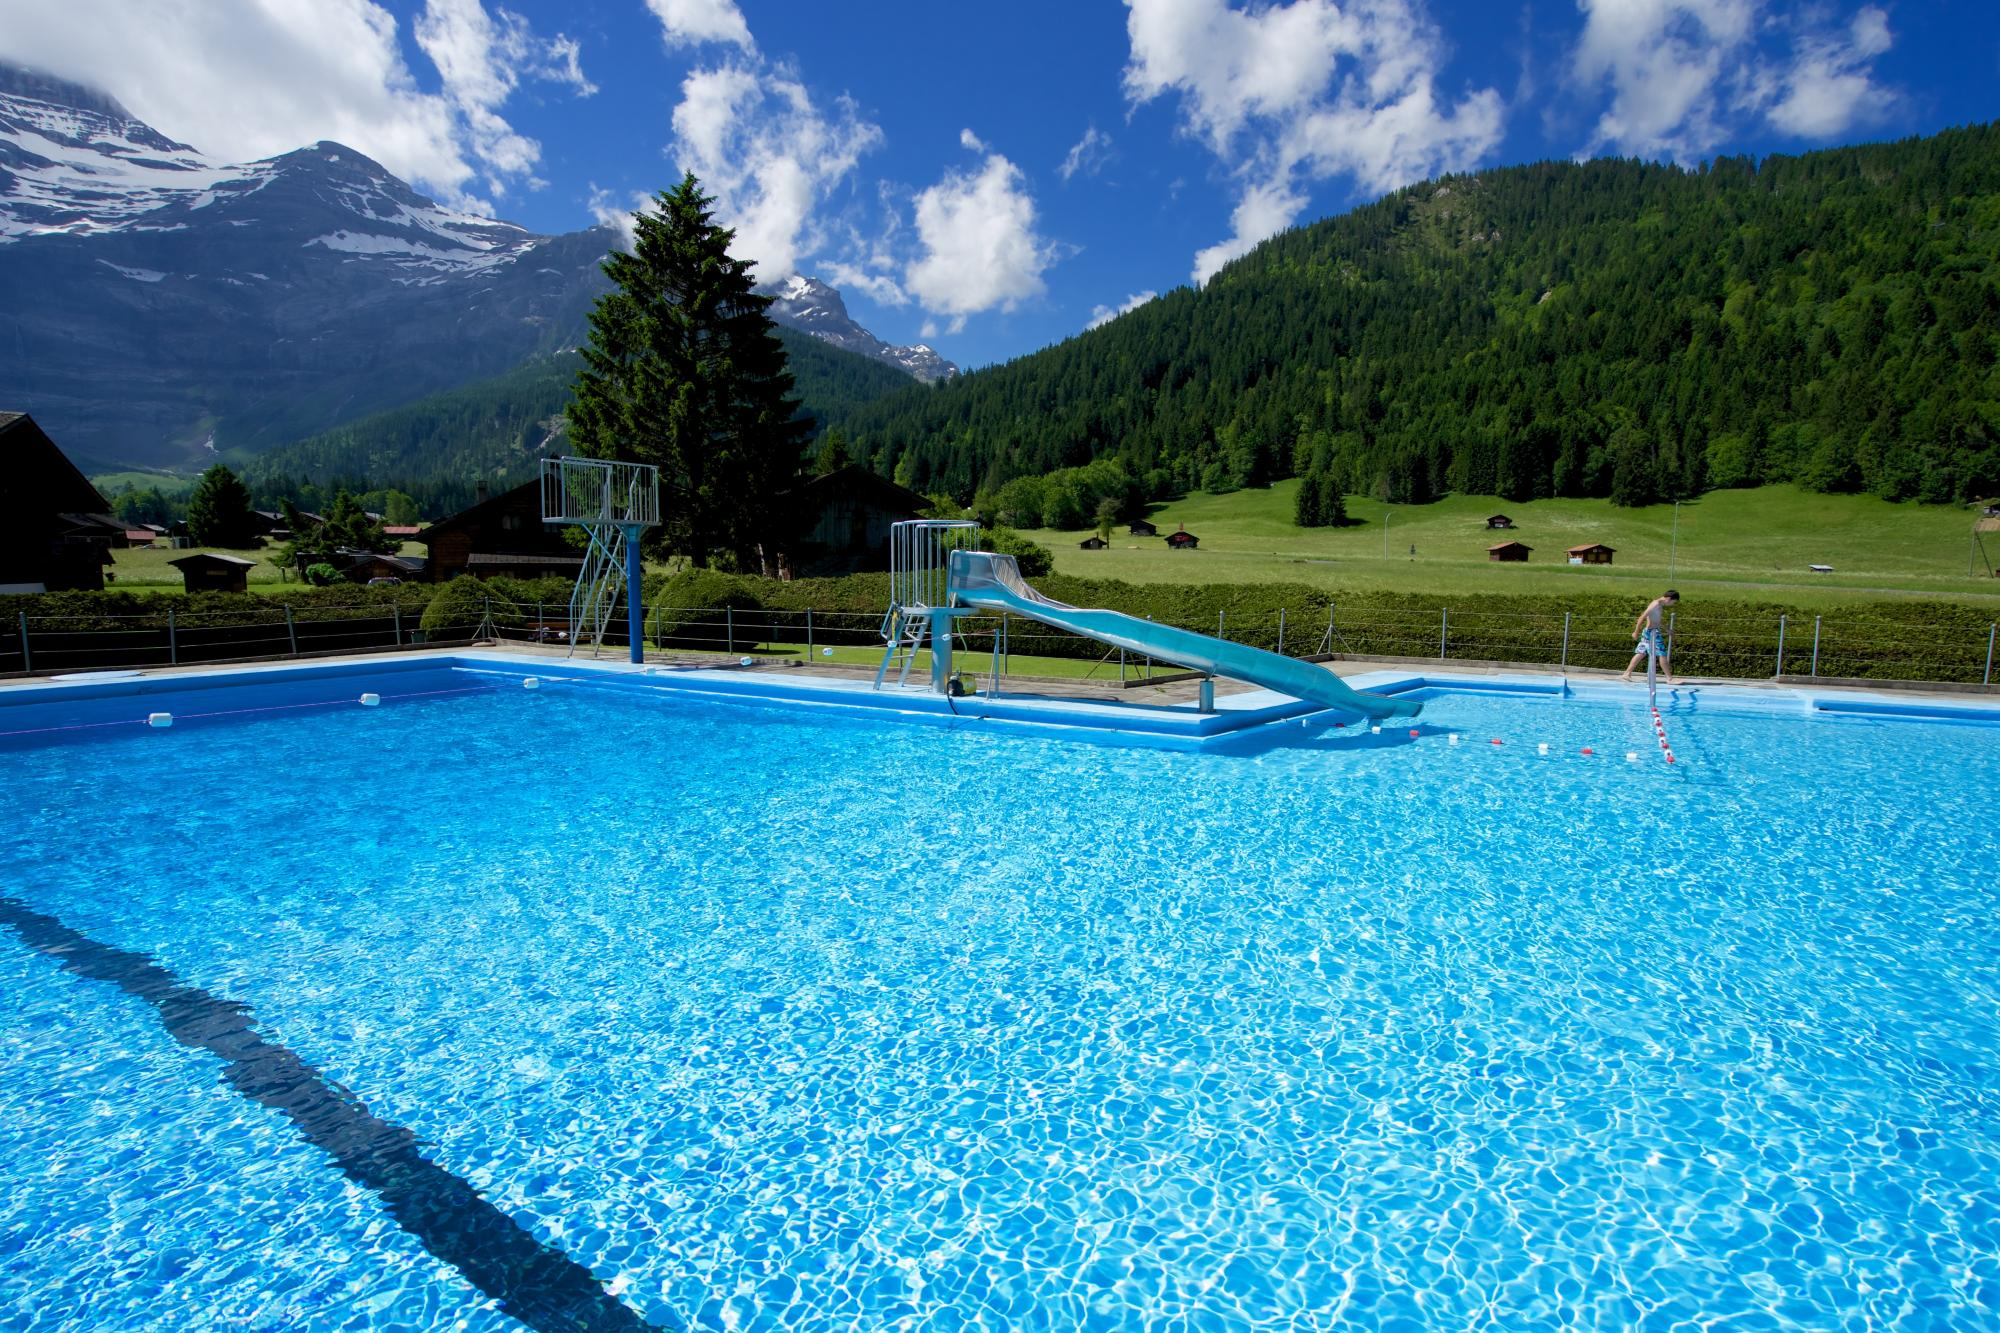 Les diablerets swimming pool villars gryon les for Les piscines